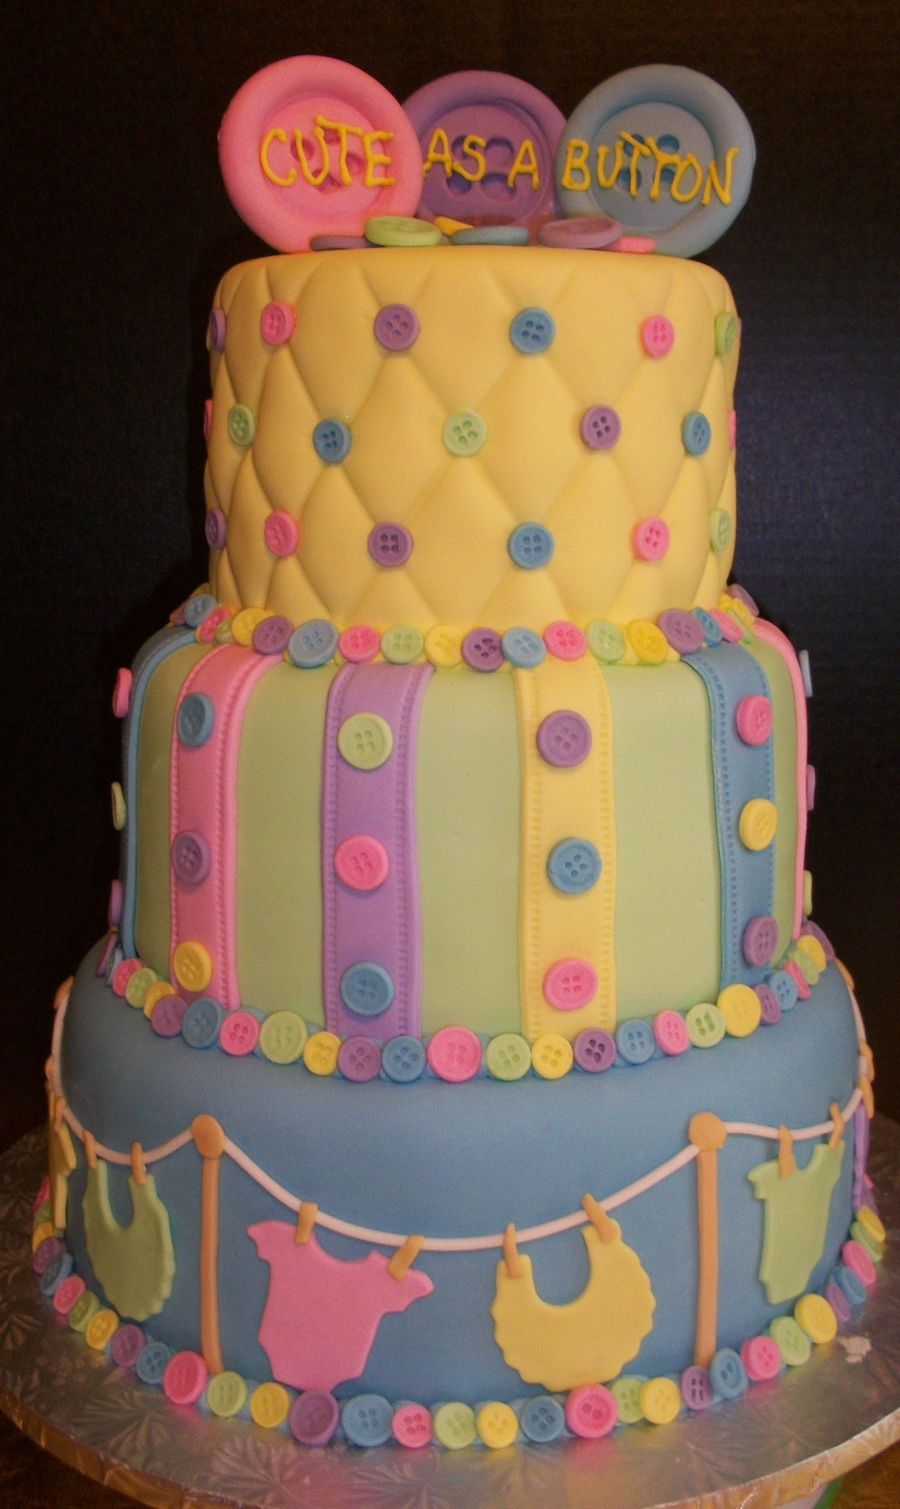 Baby Shower Themes Cute As A Button ~ Cute as a button baby shower cakecentral